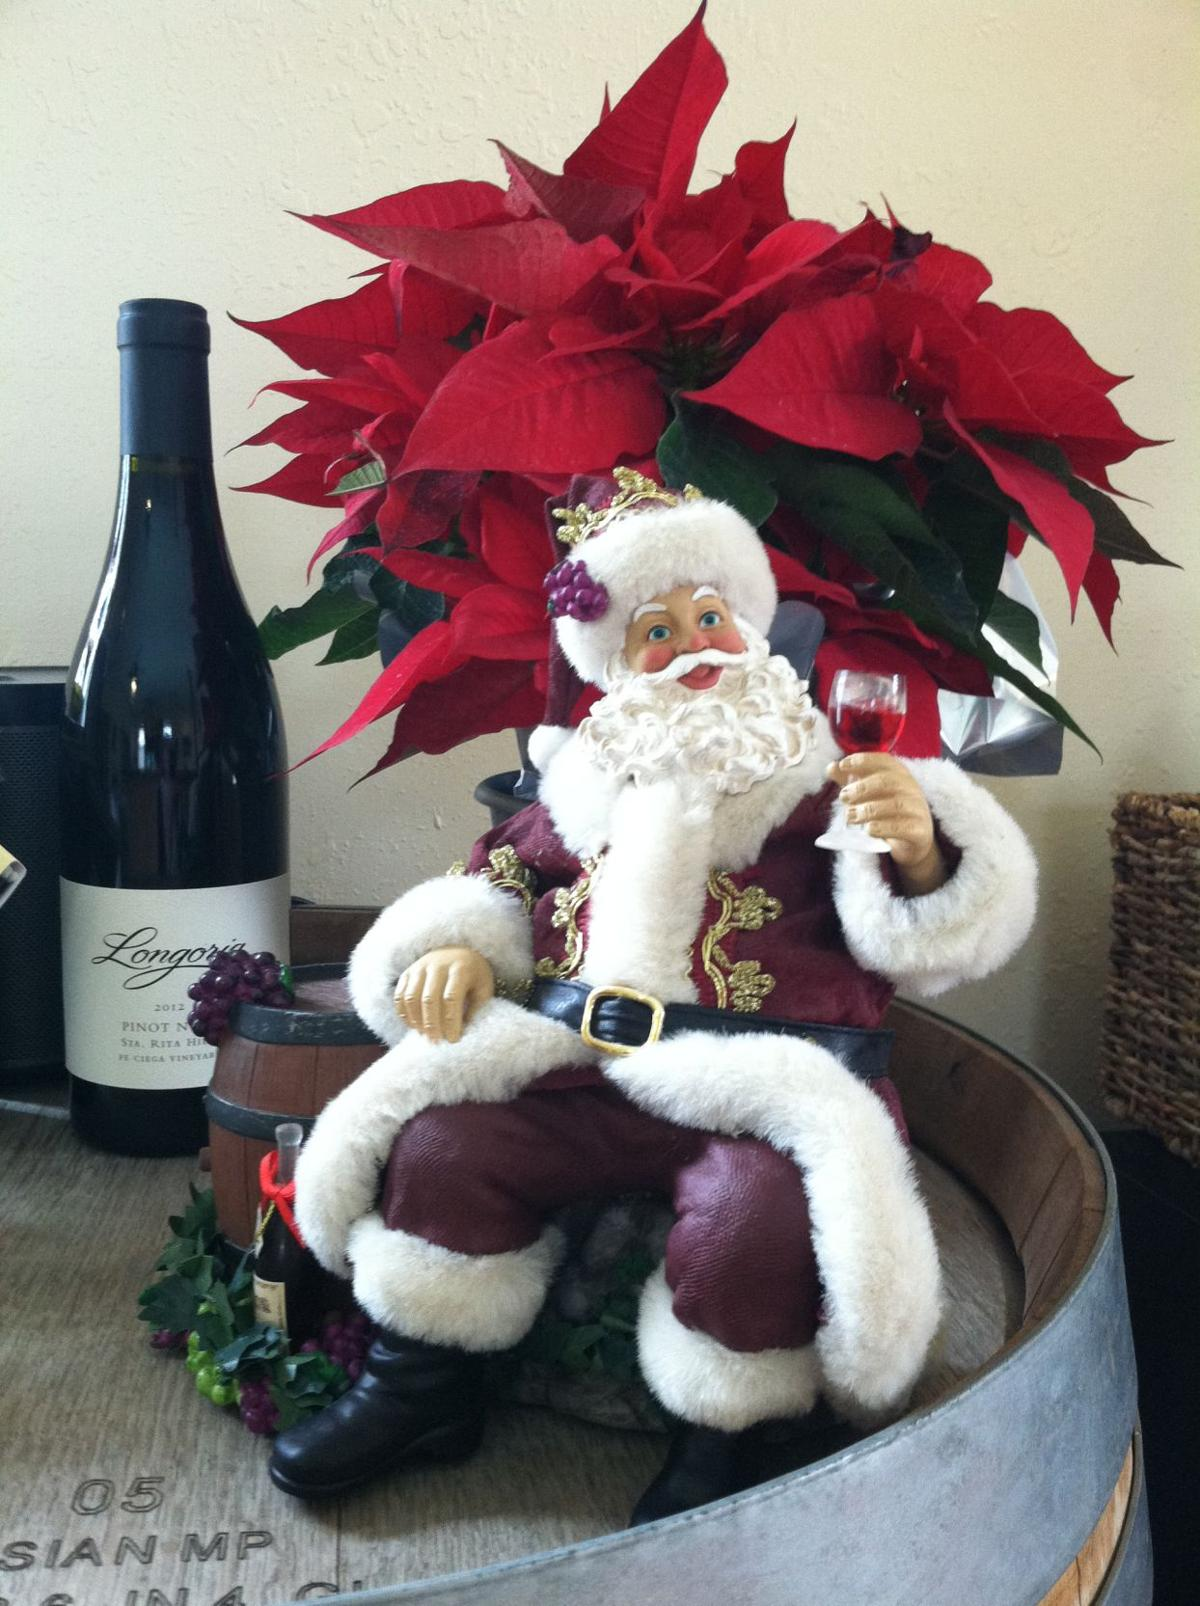 Lompoc Mid-Town Wineries Holiday Open House